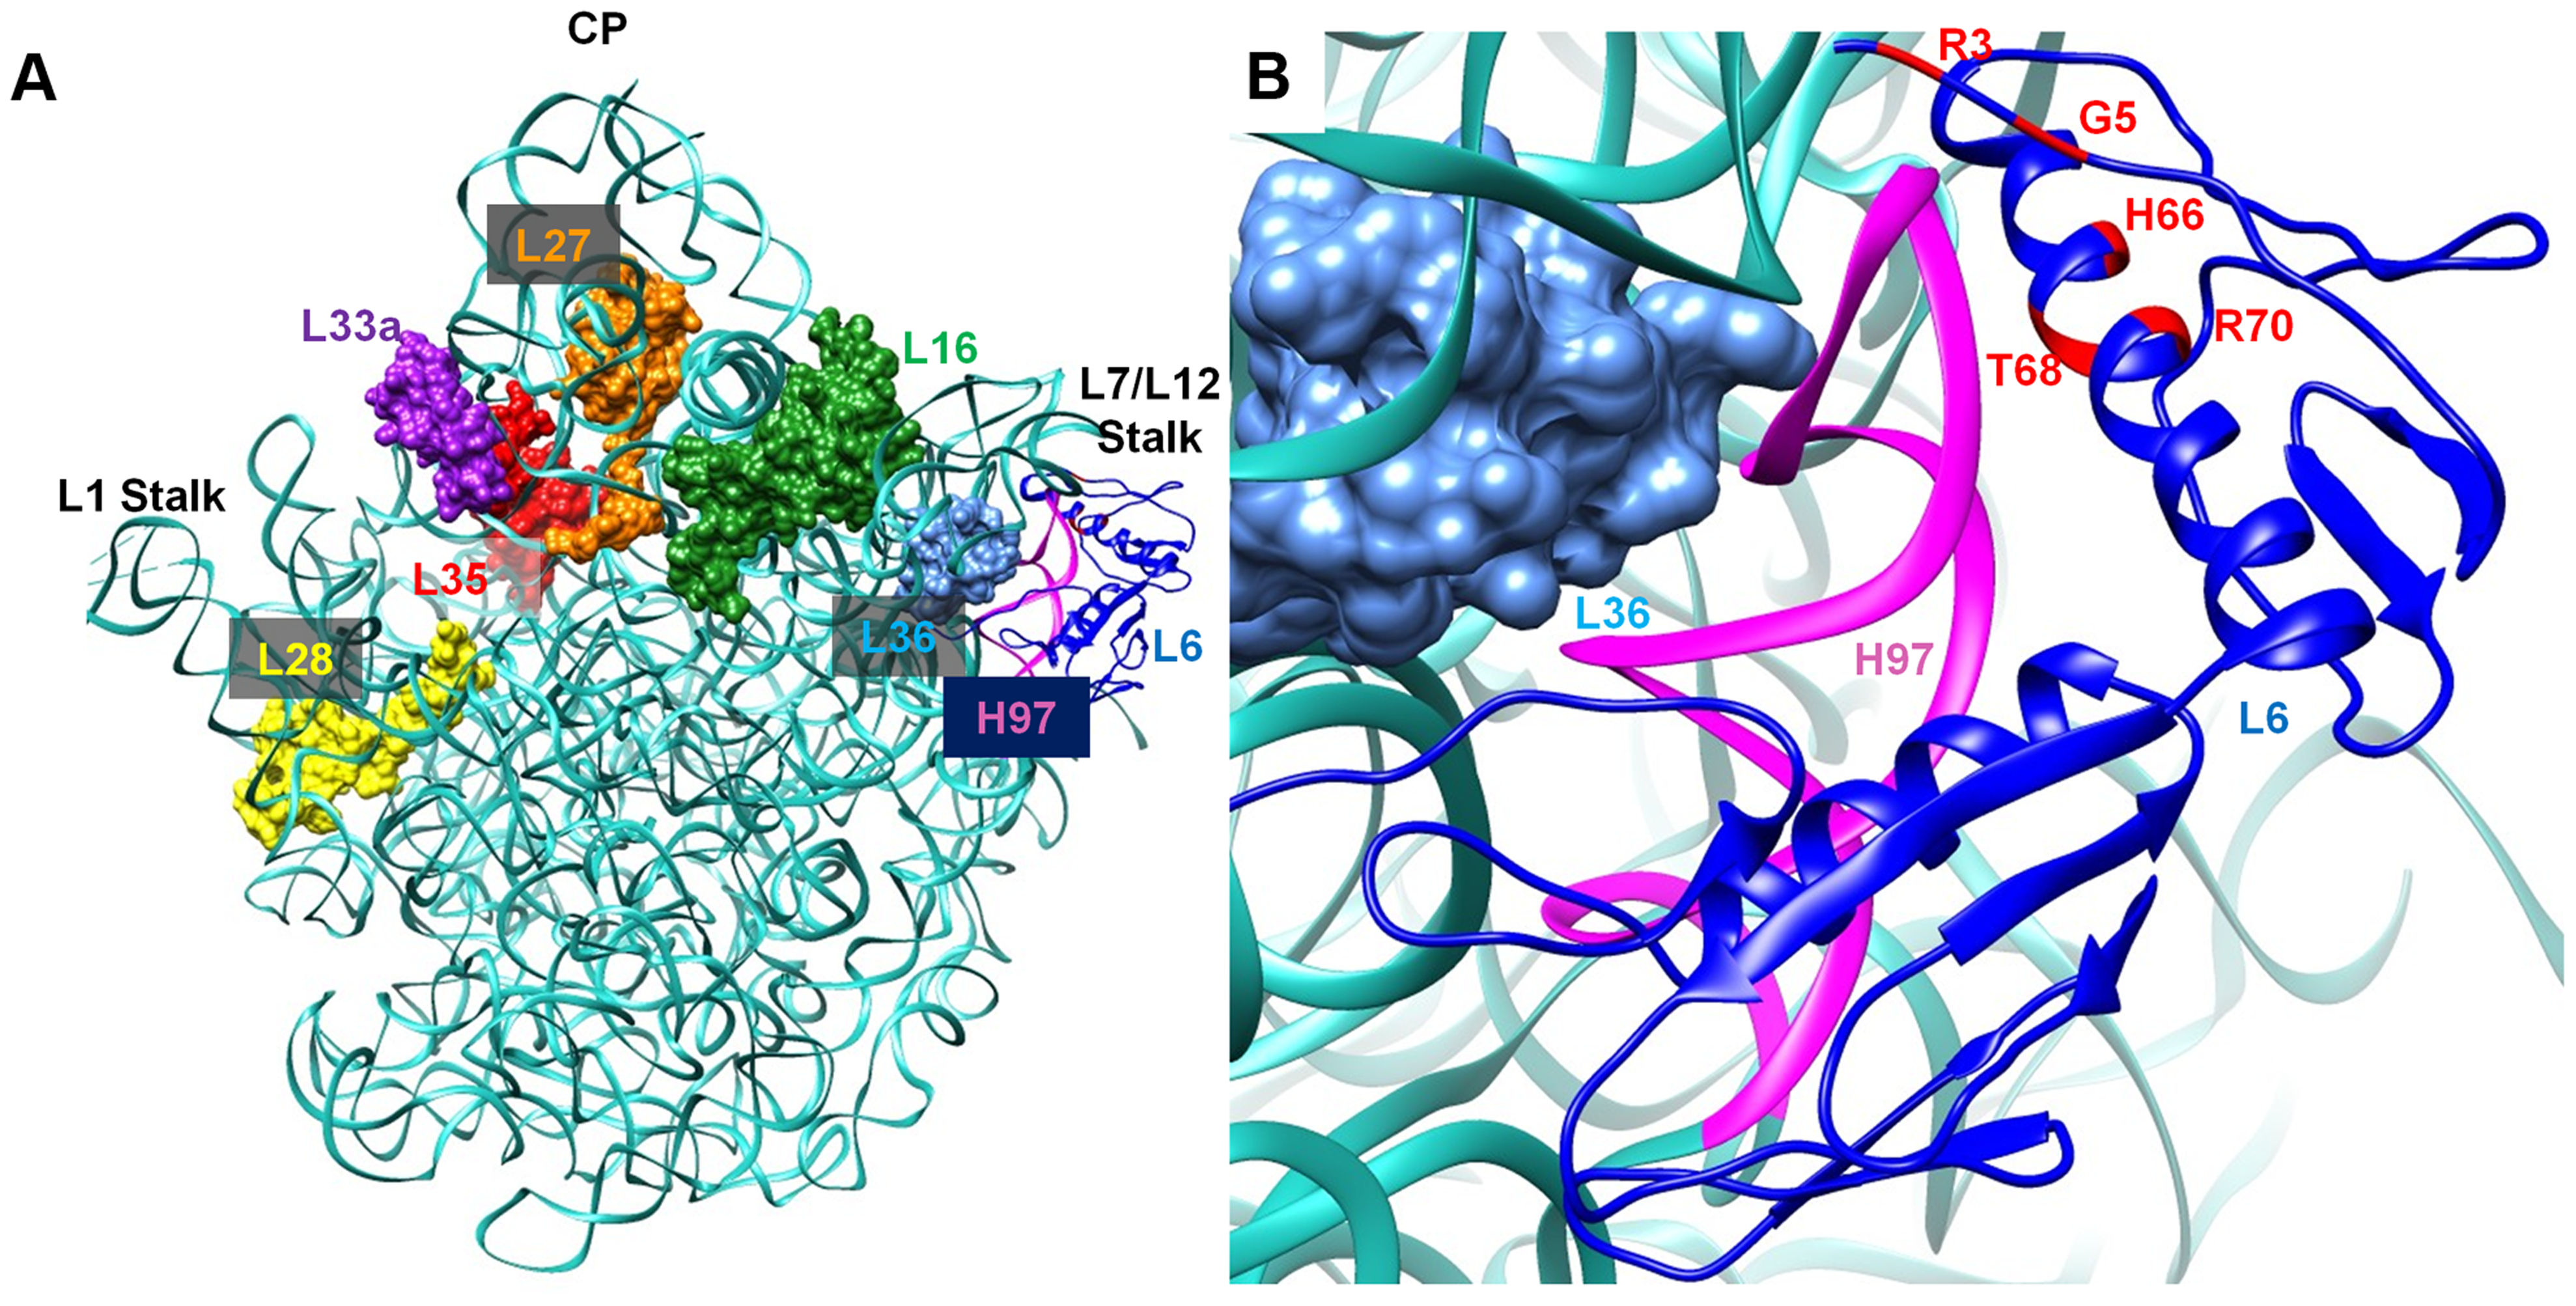 Interaction between L6 protein and the 50S ribosomal subunit.